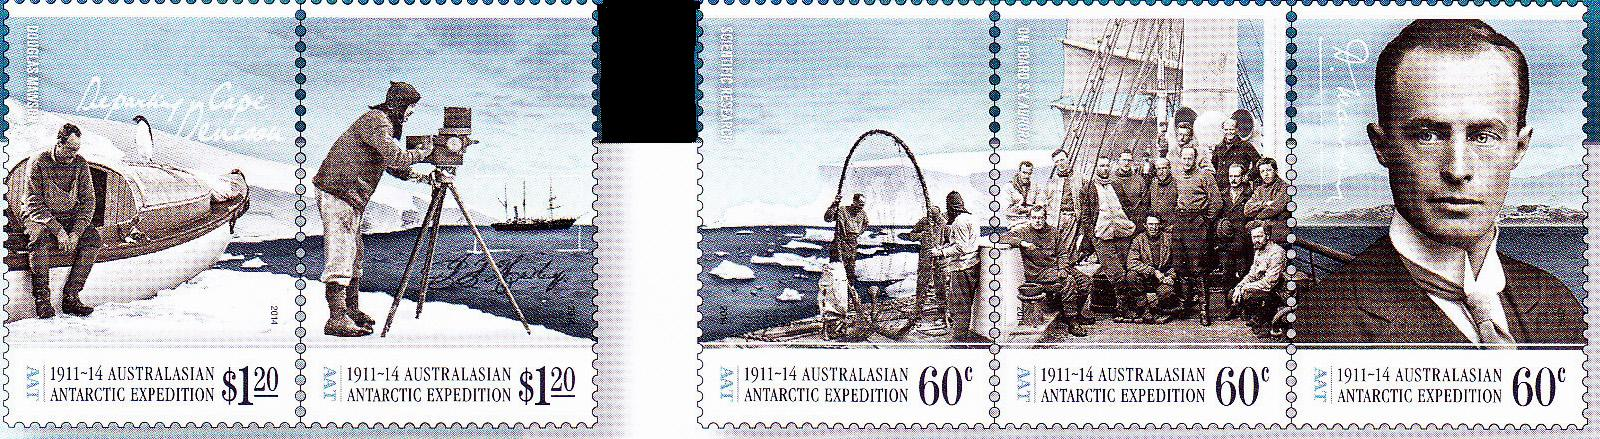 1911-1914 AUSTRALASIAN EXPEDITION, Australian Antarctic Division,Antartica,Antartic,AAT,FDC,FDC's,First Day Cover,First Day Cover,Antartic base first day covers,AAT Base Covers,Stamp Collecting,Australian Antarctic Territory,Mawson,Davis,Heard Island,Macquarie Island,Australian Postal History,First Day Covers,Australian First Day Covers